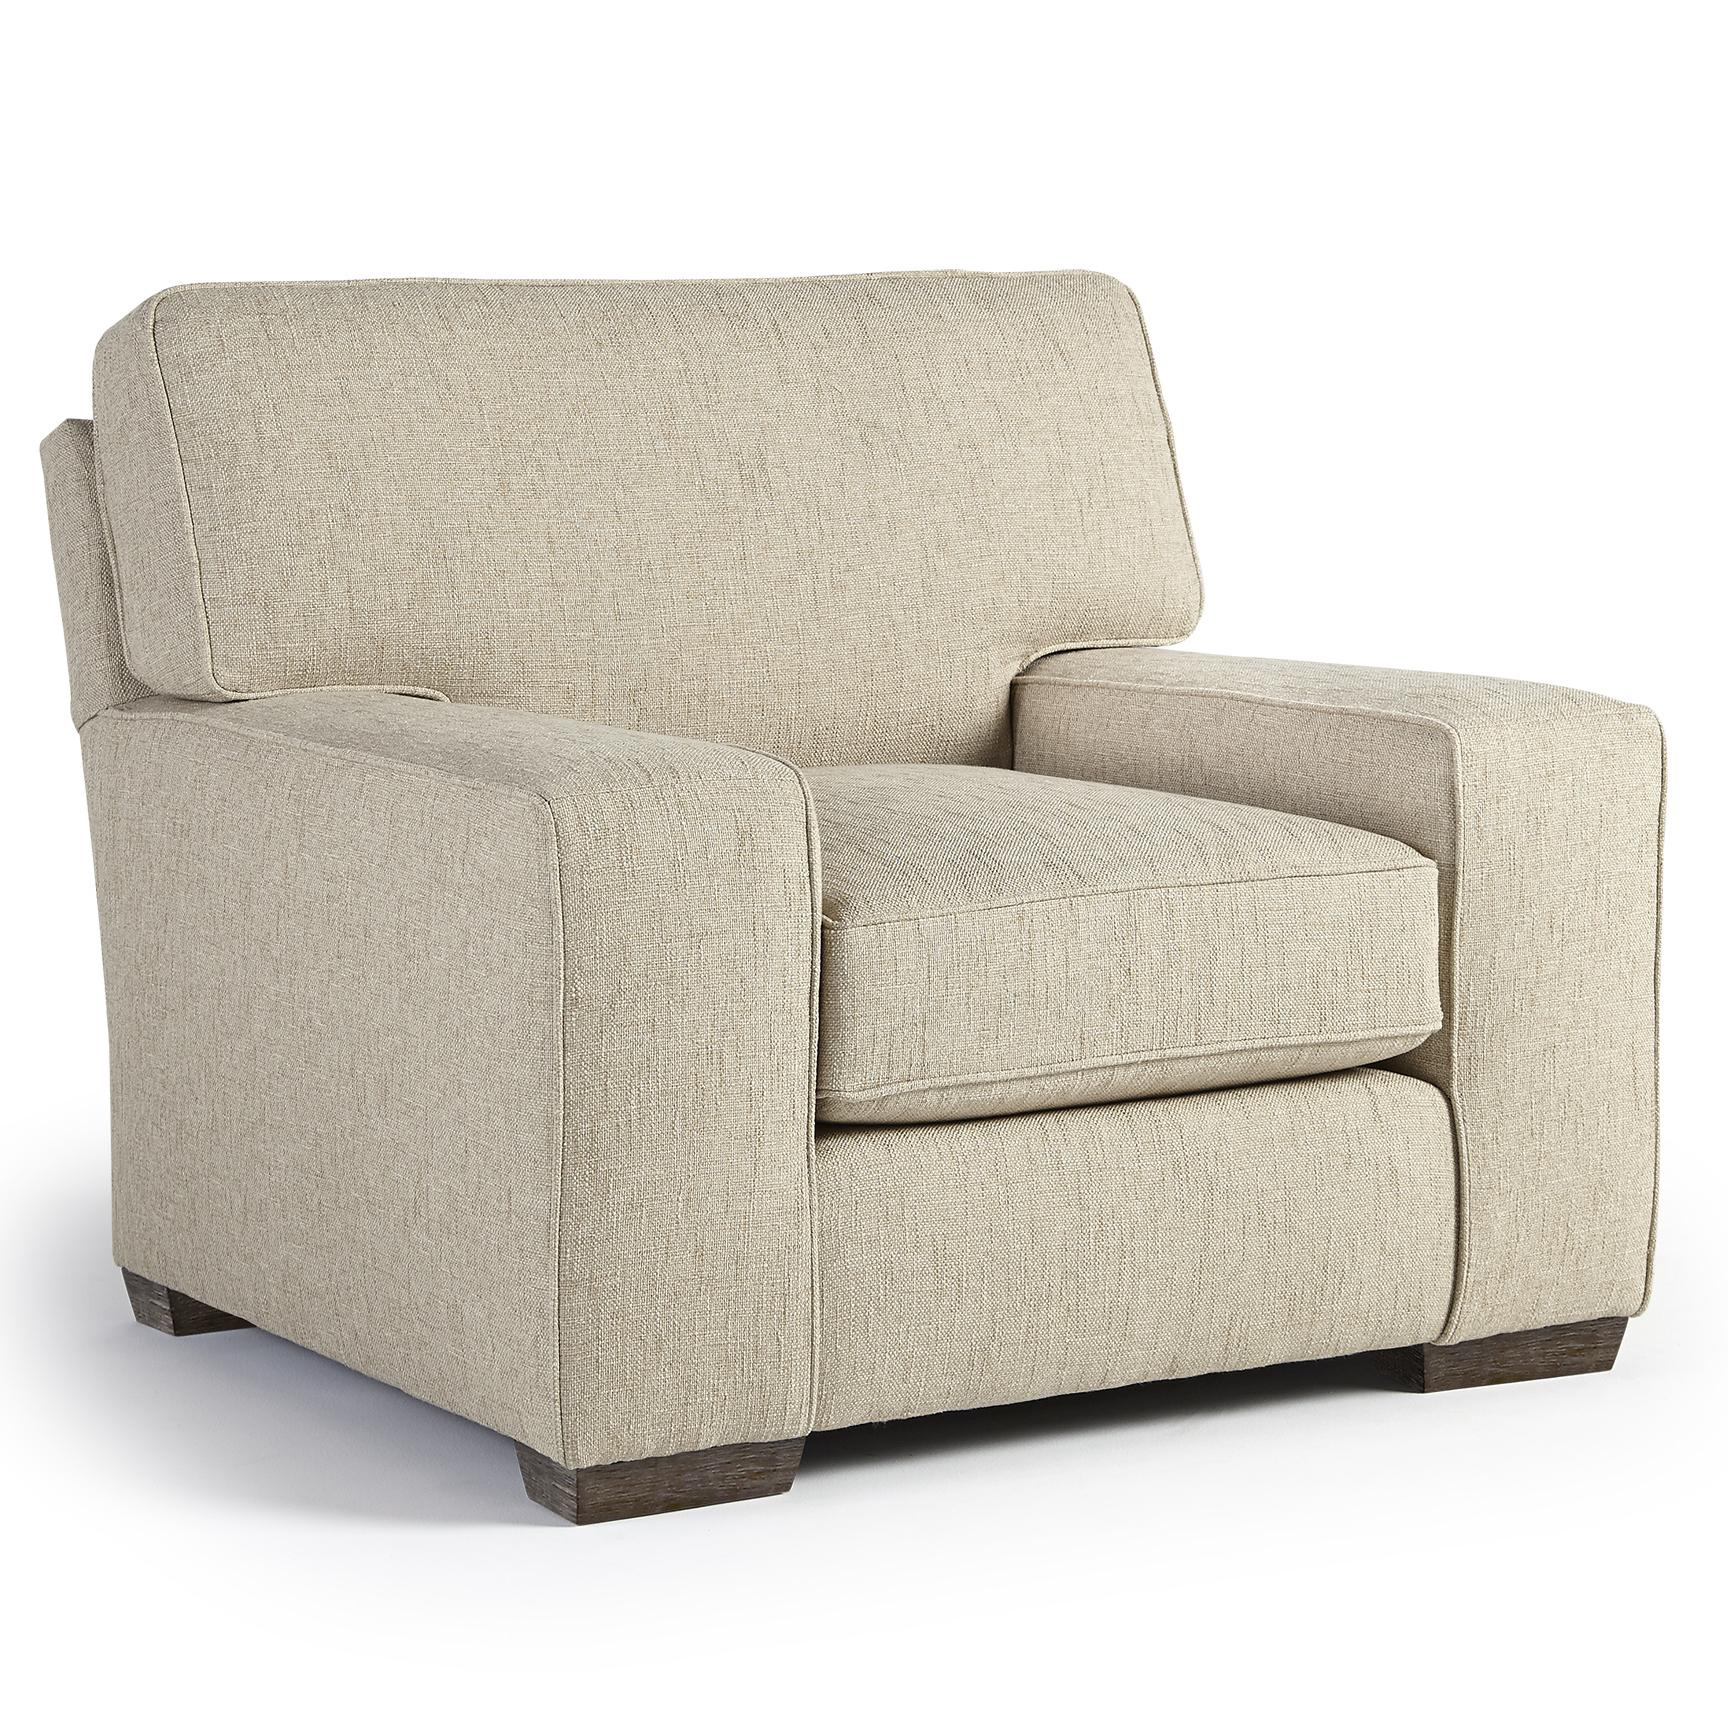 Best Home Furnishings Millport Club Chair - Item Number: C47E